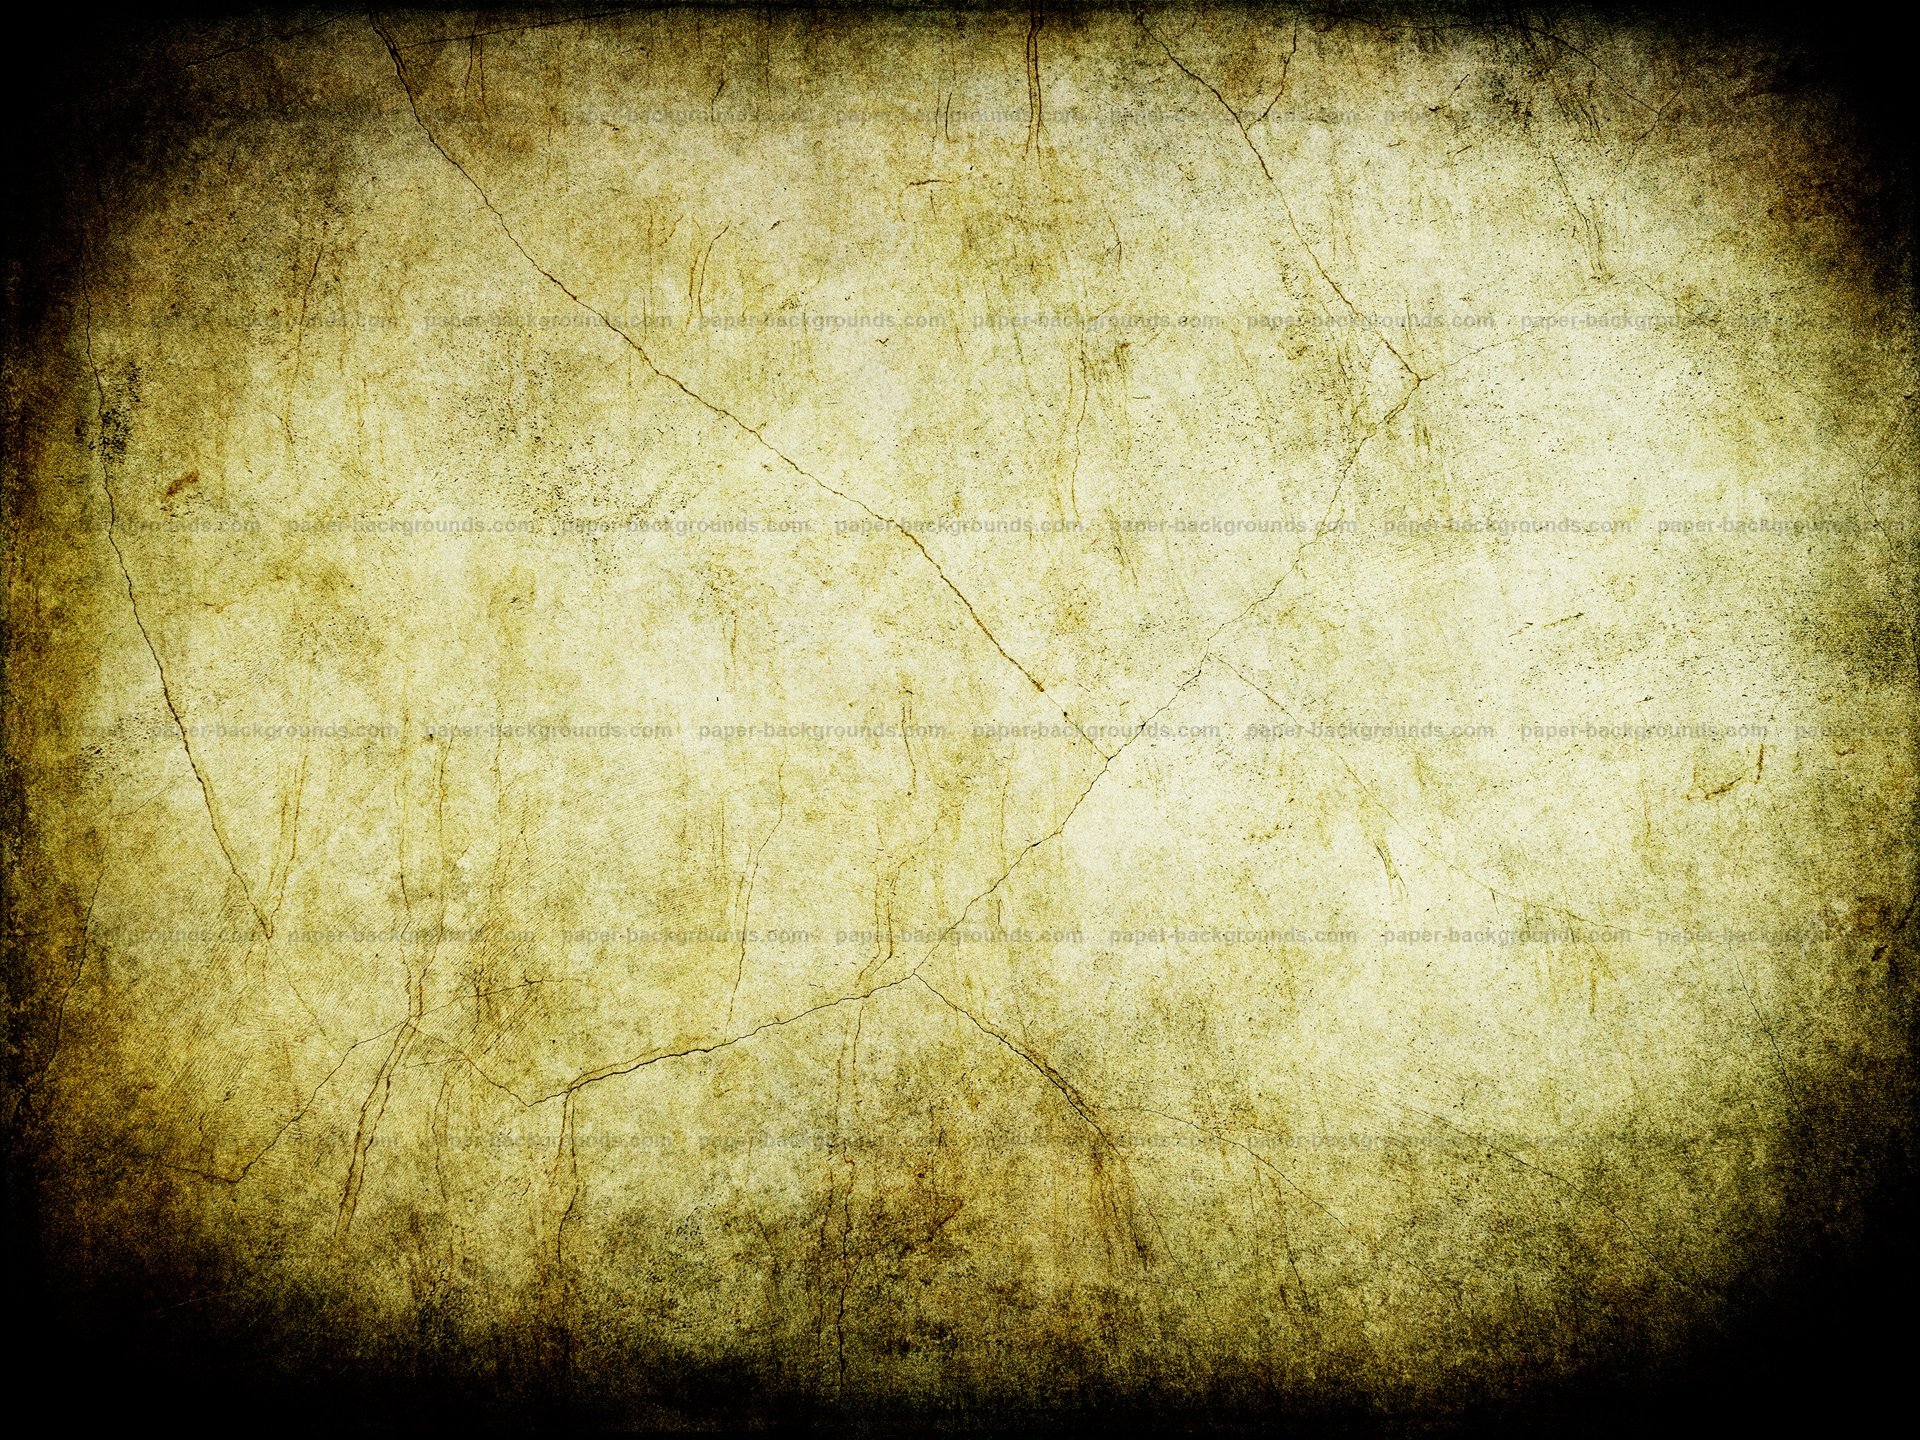 Simple Wallpaper Halloween Grunge - grunge-old-yellow-wall-background-hd  Perfect Image Reference_44654.jpg